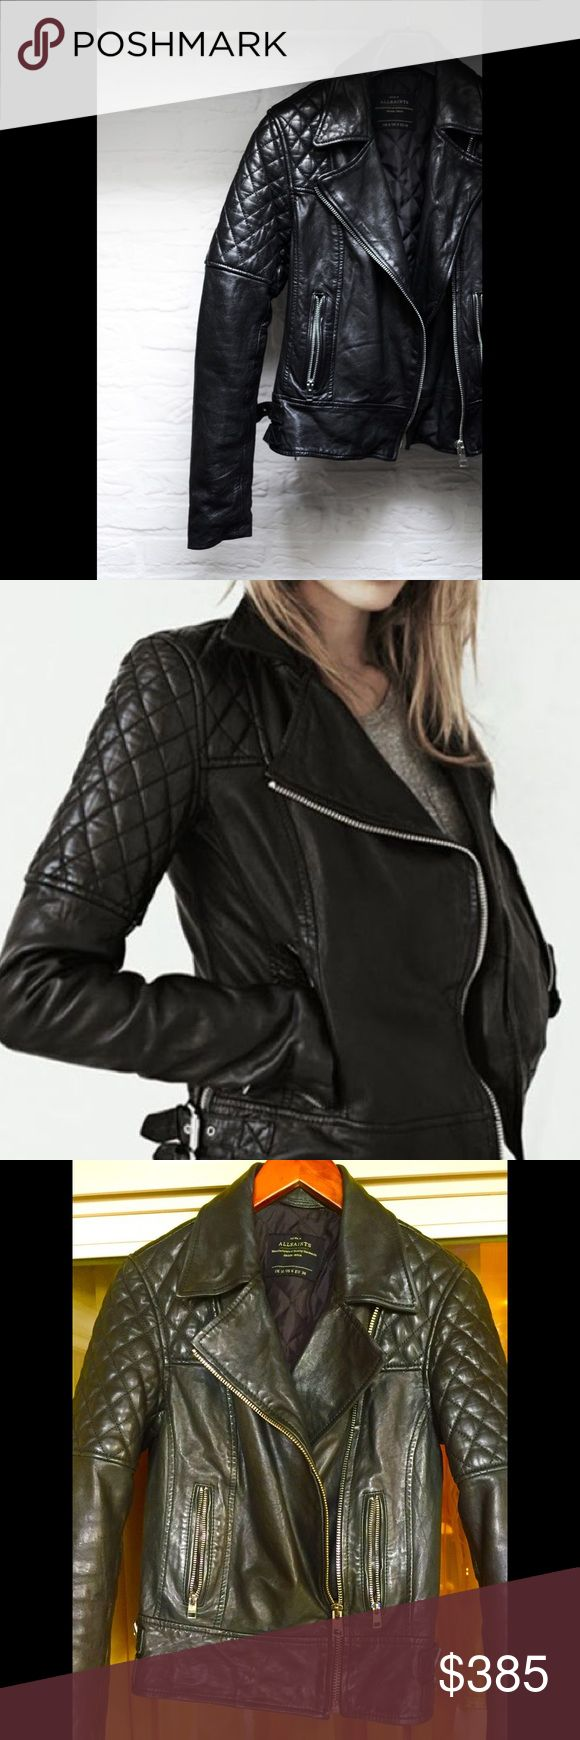 "All Saints Black Biker ""Walker"" Jacket US 6 The perfect black Biker leather jacket Walker by All Saints. It is size US 6, fits like 4. Great condition, bought in 2016, no flaws! Naturally distressed, crafted in super-soft lamb leather that wears beautifully over time. Diamond-quilted shoulder panels and zip cuffs add classic biker detail, while the specially tanned leather offers a soft, flexible fit. Quilted, 2 zip pockets AllSaints logo-zips. Specially tanned leather for a soft, flexible…"